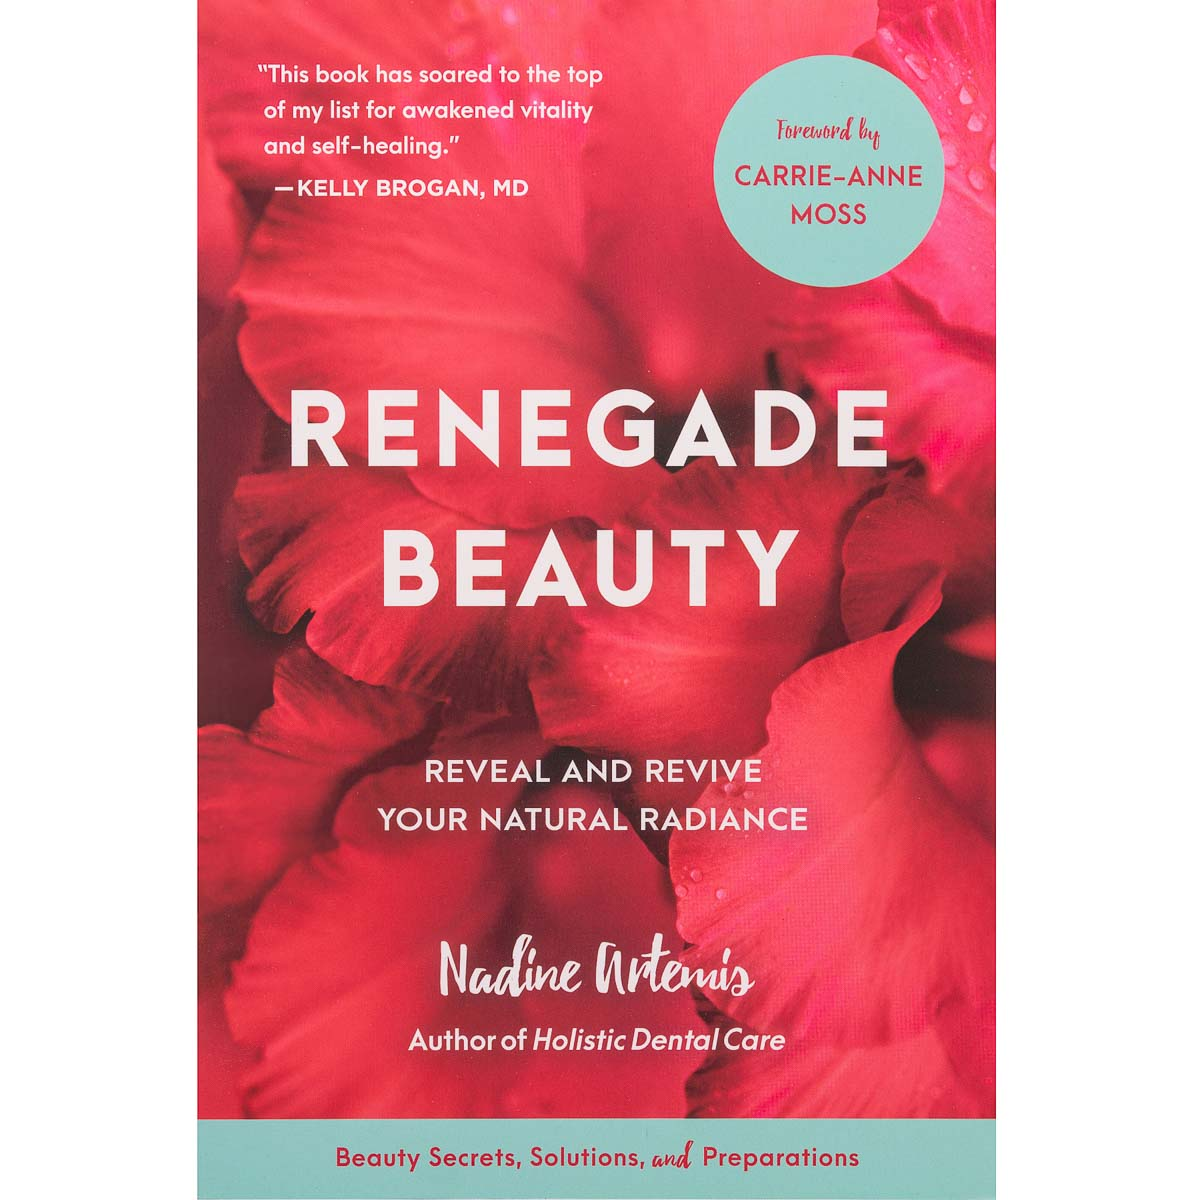 Renegade Beauty (Nadine Artemis)